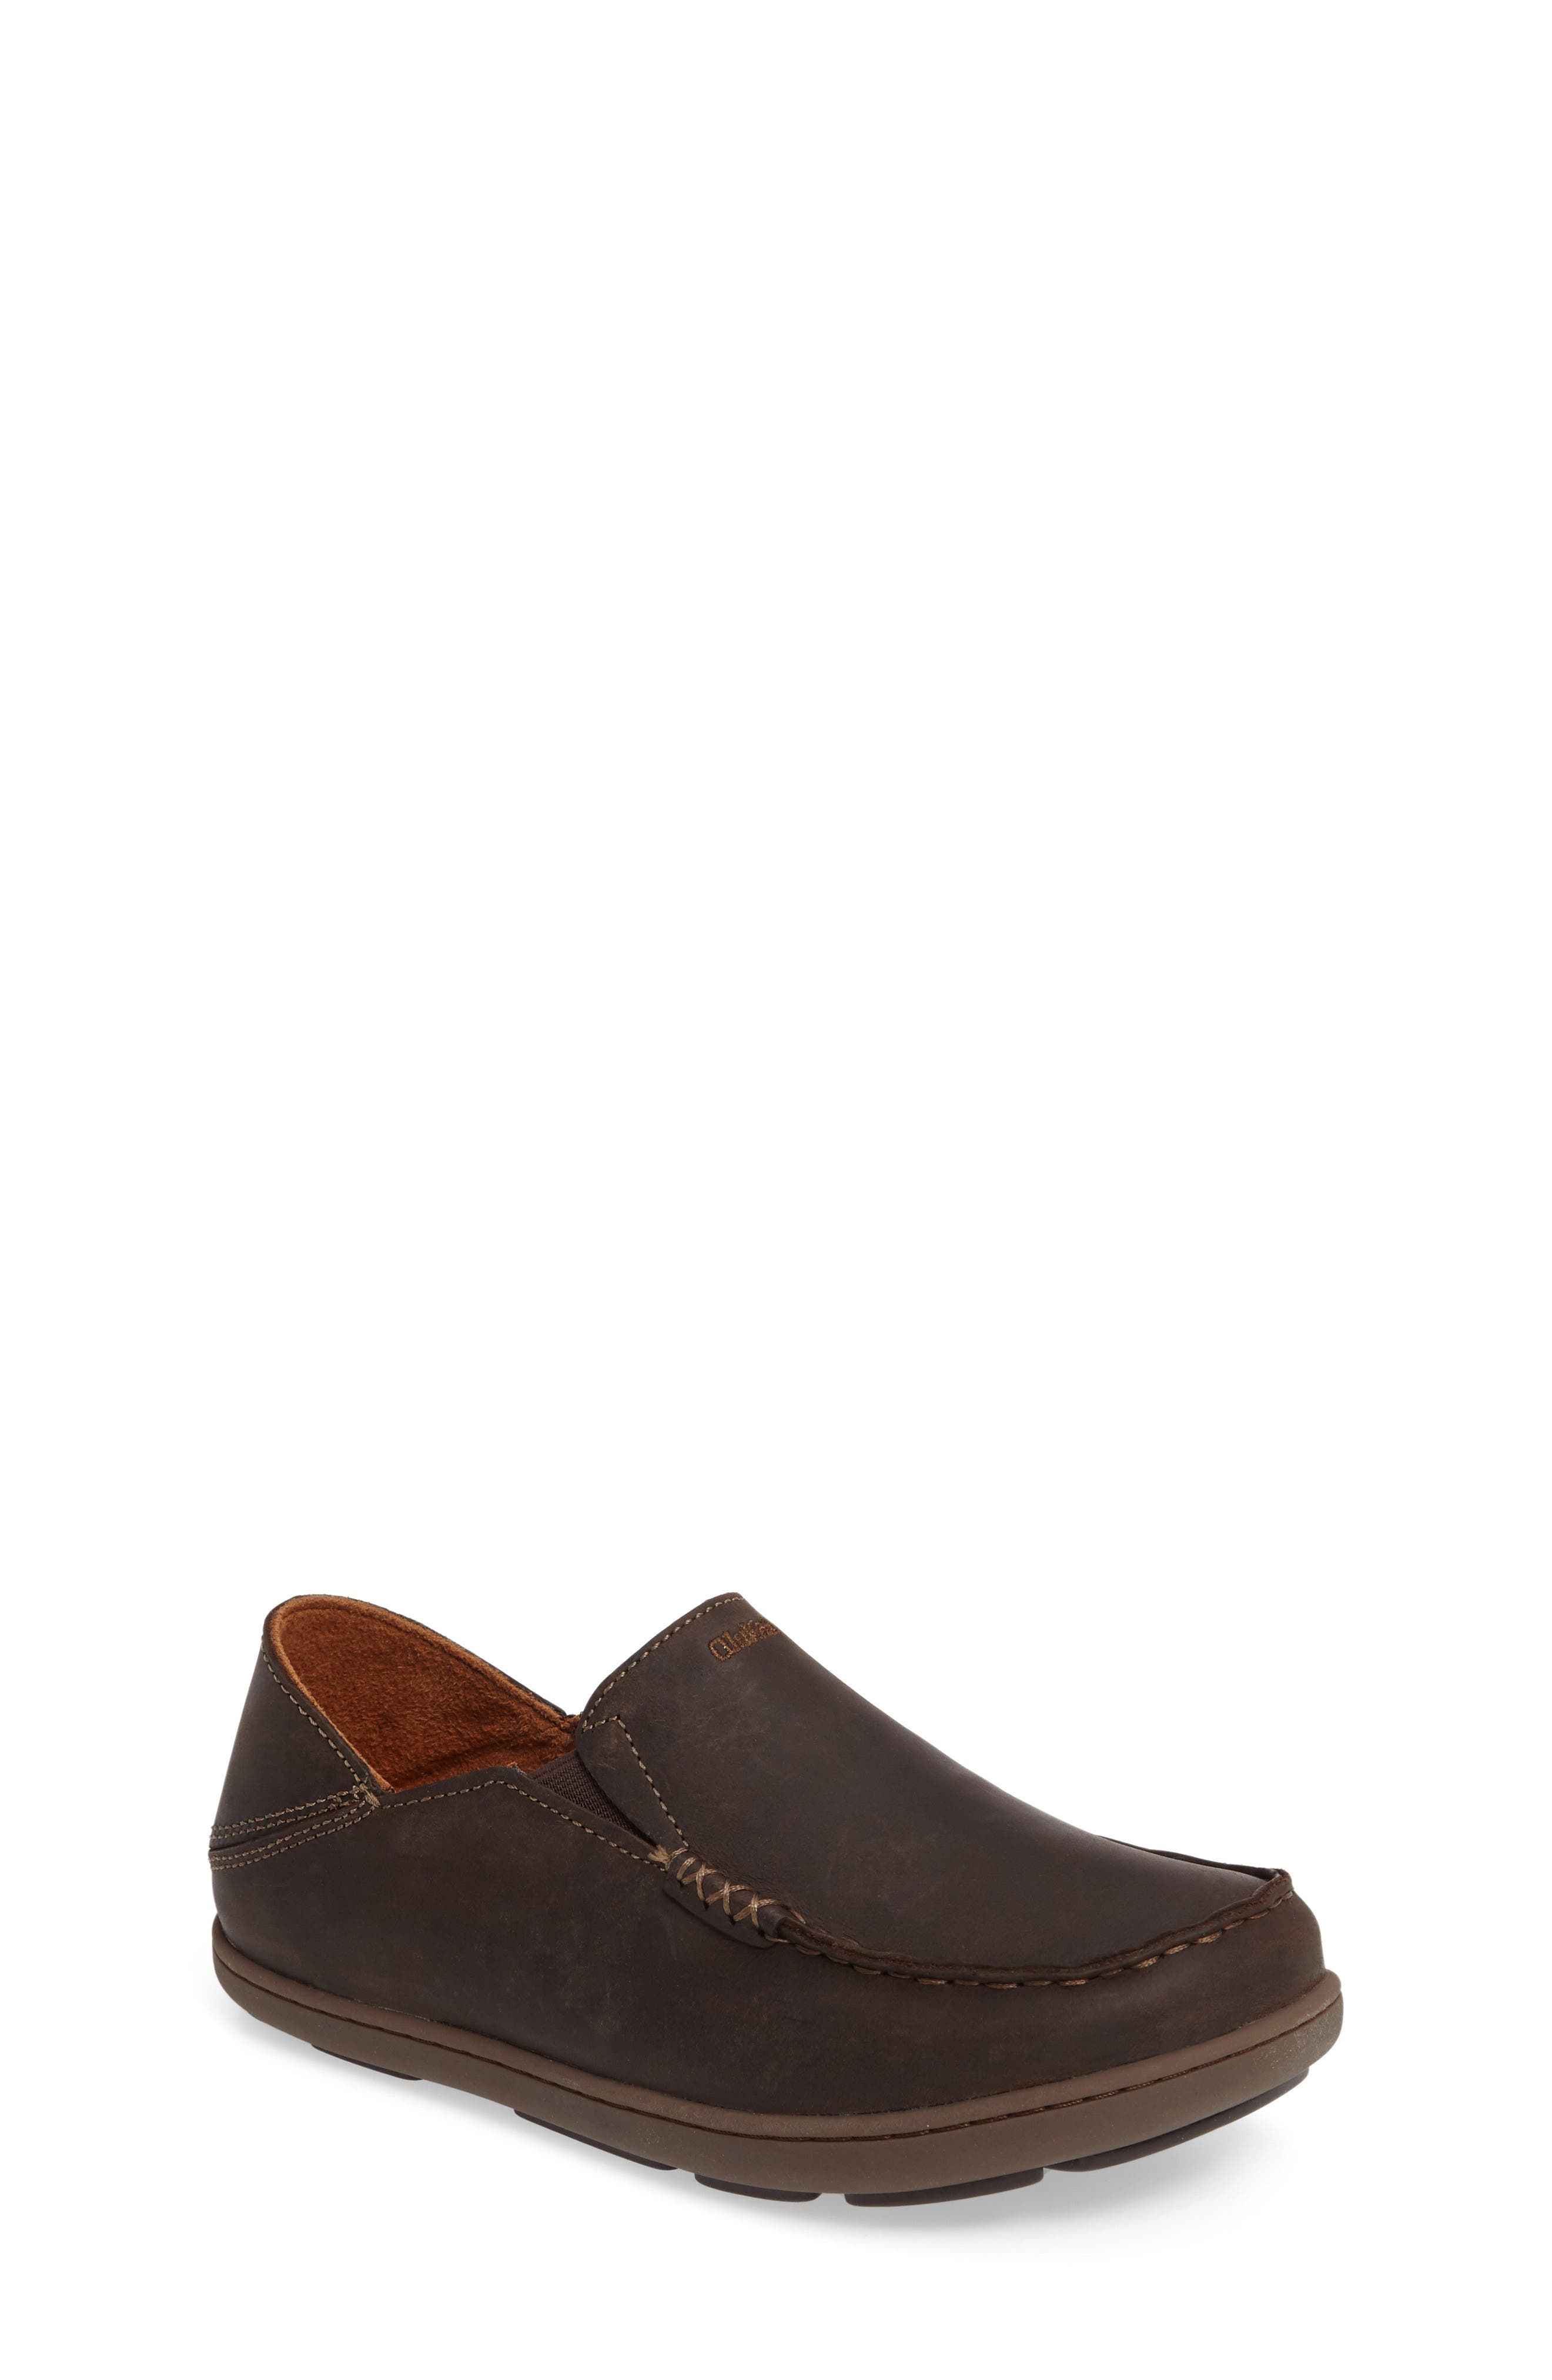 'Moloa' Water Resistant Slip-On,                         Main,                         color, DARK WOOD/ MUSTANG